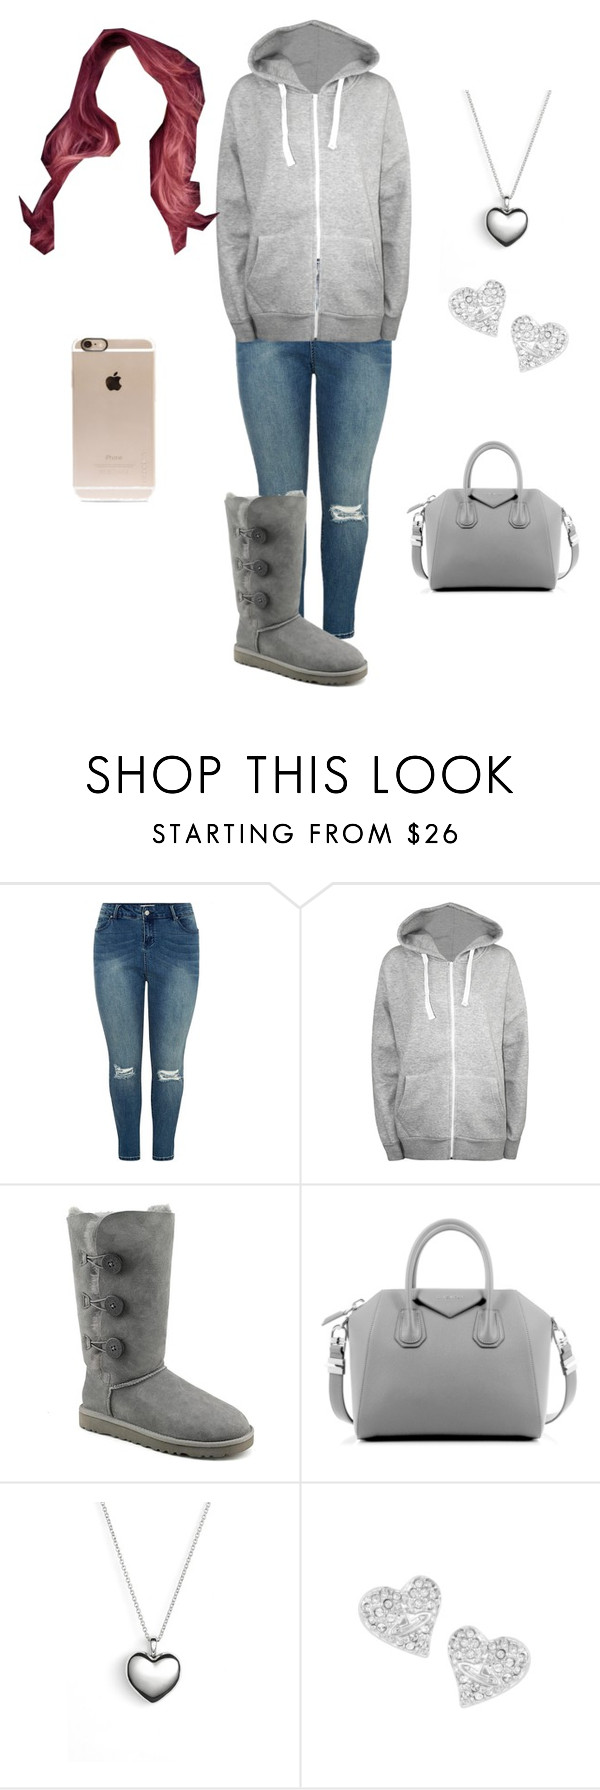 """Casual day"" by tianna-rose-richardson ❤ liked on Polyvore featuring WearAll, UGG Australia, Givenchy, Pandora, Vivienne Westwood, Incase, women's clothing, women, female and woman"